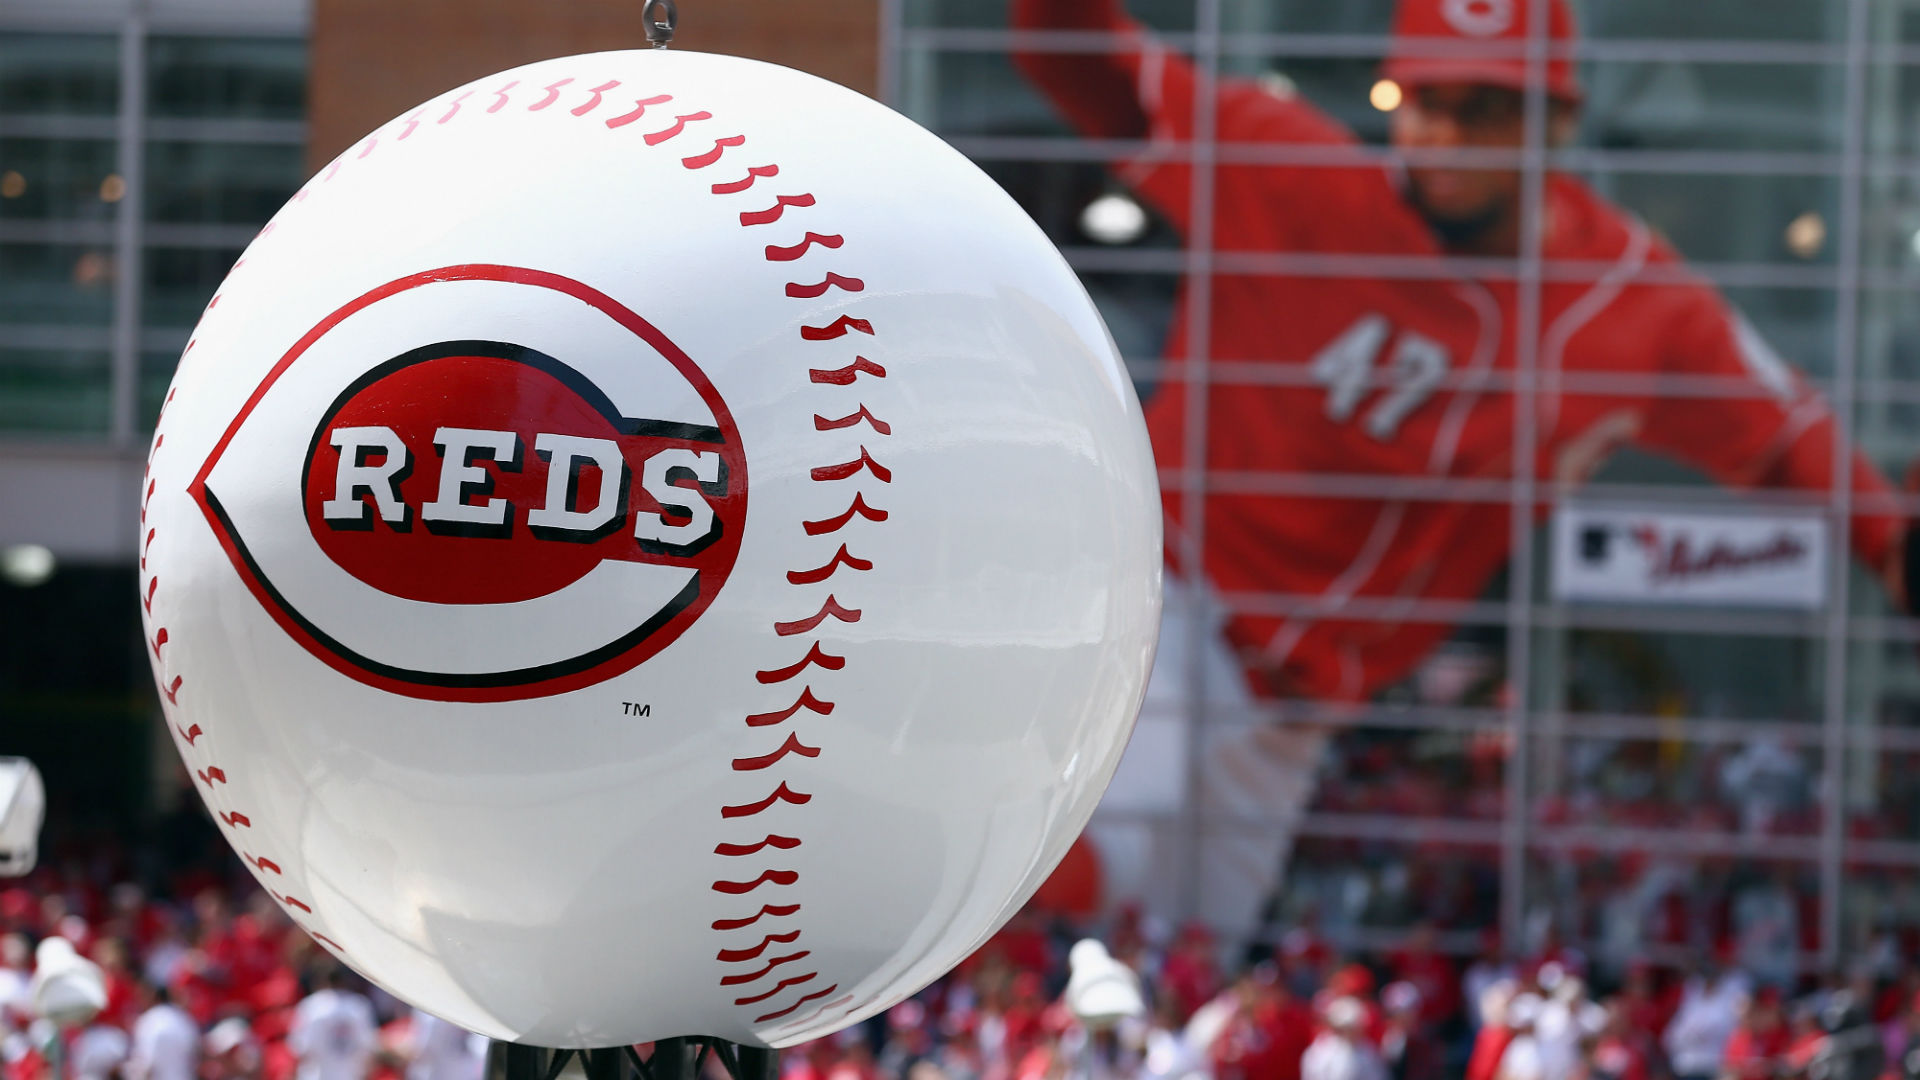 Reds Minor leaguer killed, 2 injured in car accident